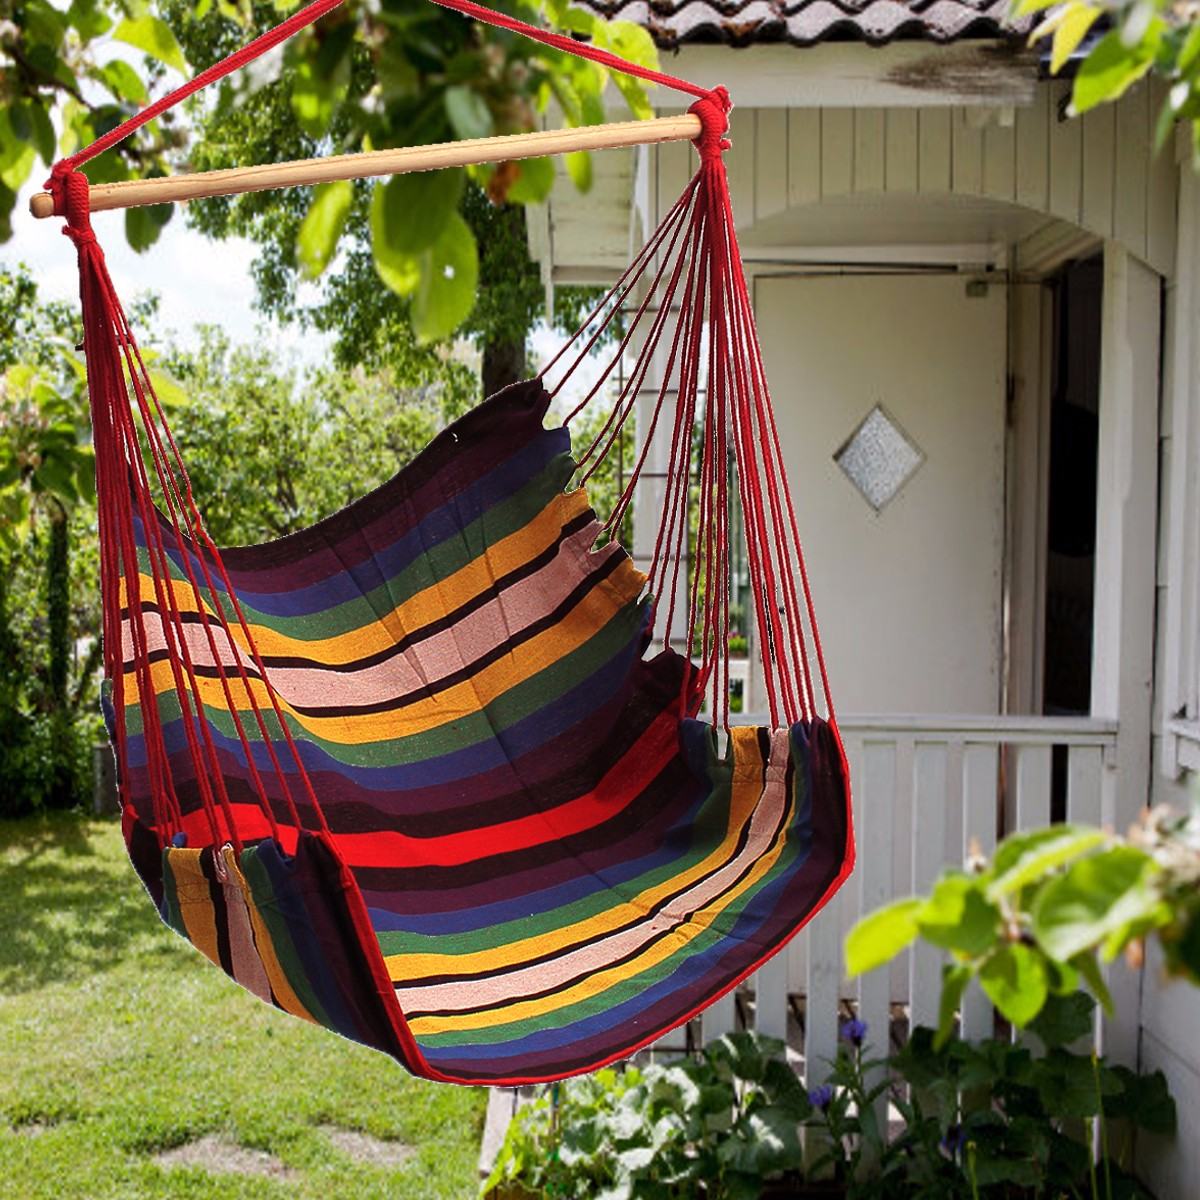 Hanging Chair Outdoor Garden Patio Hanging Thicken Hammock Chair Indoor Outdoor Cotton Swing Cushion Seat